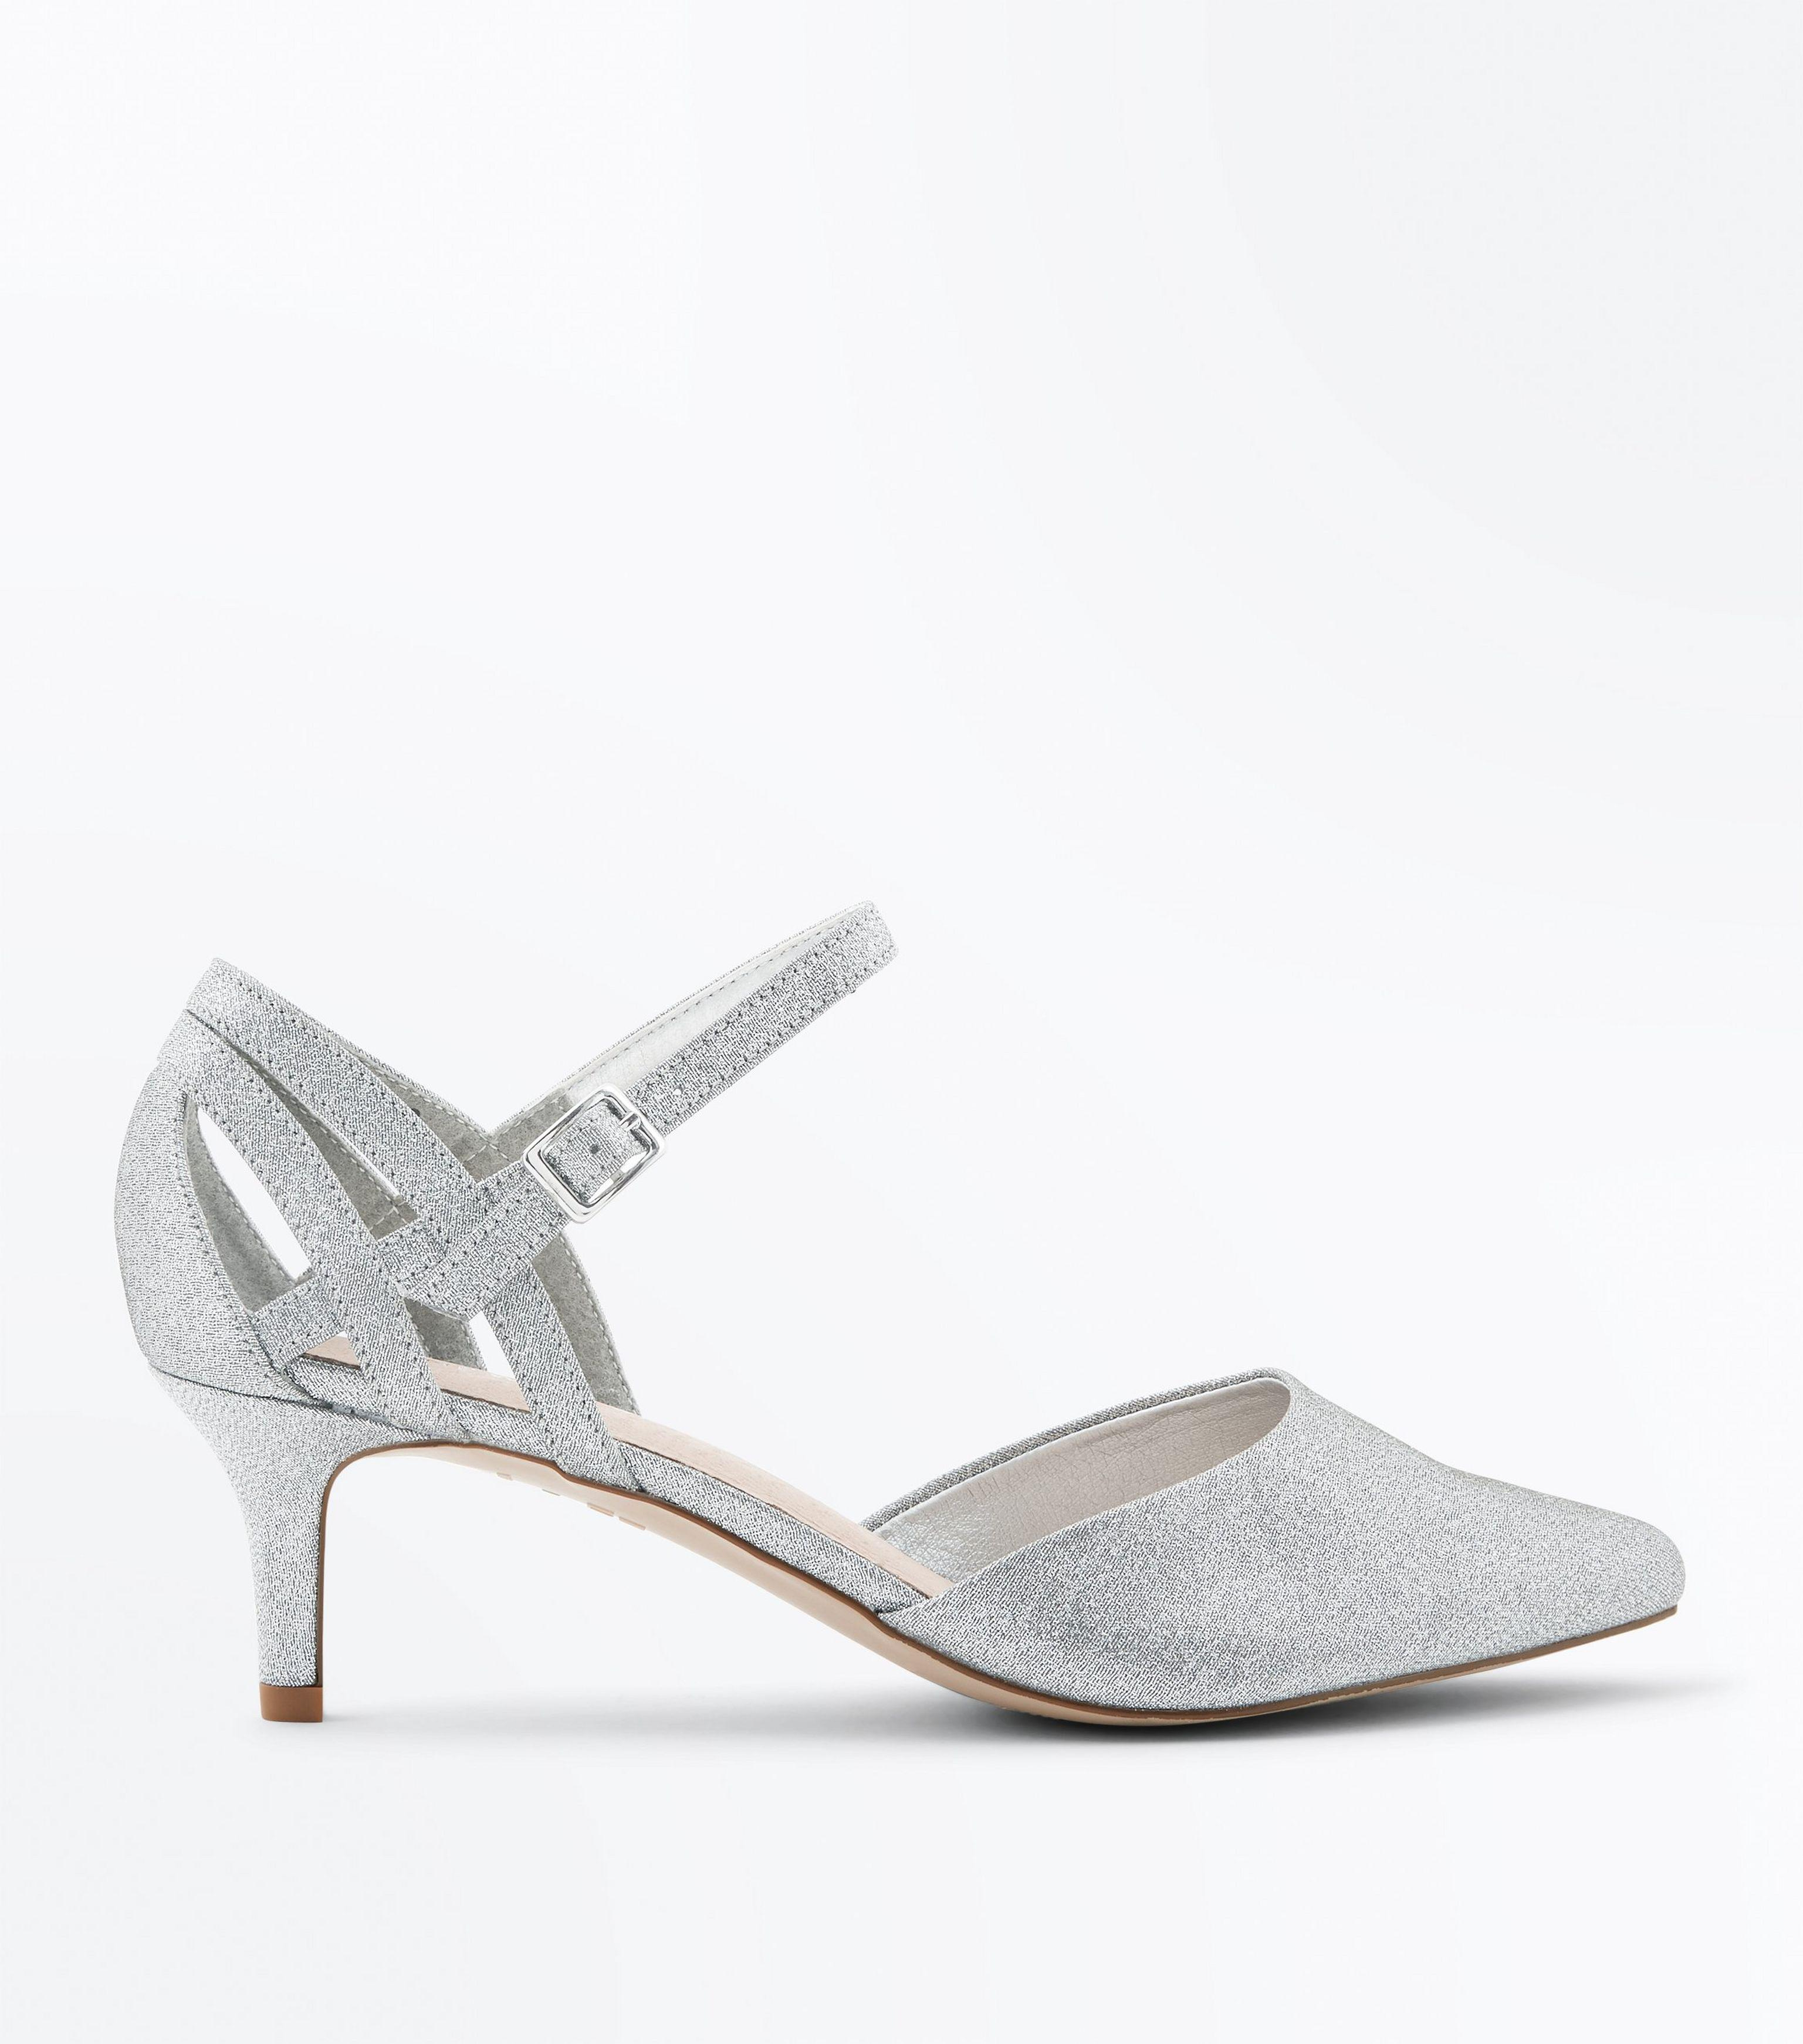 95b12db53a New Look Wide Fit Silver Comfort Flex Shimmer Pointed Kitten Heels ...